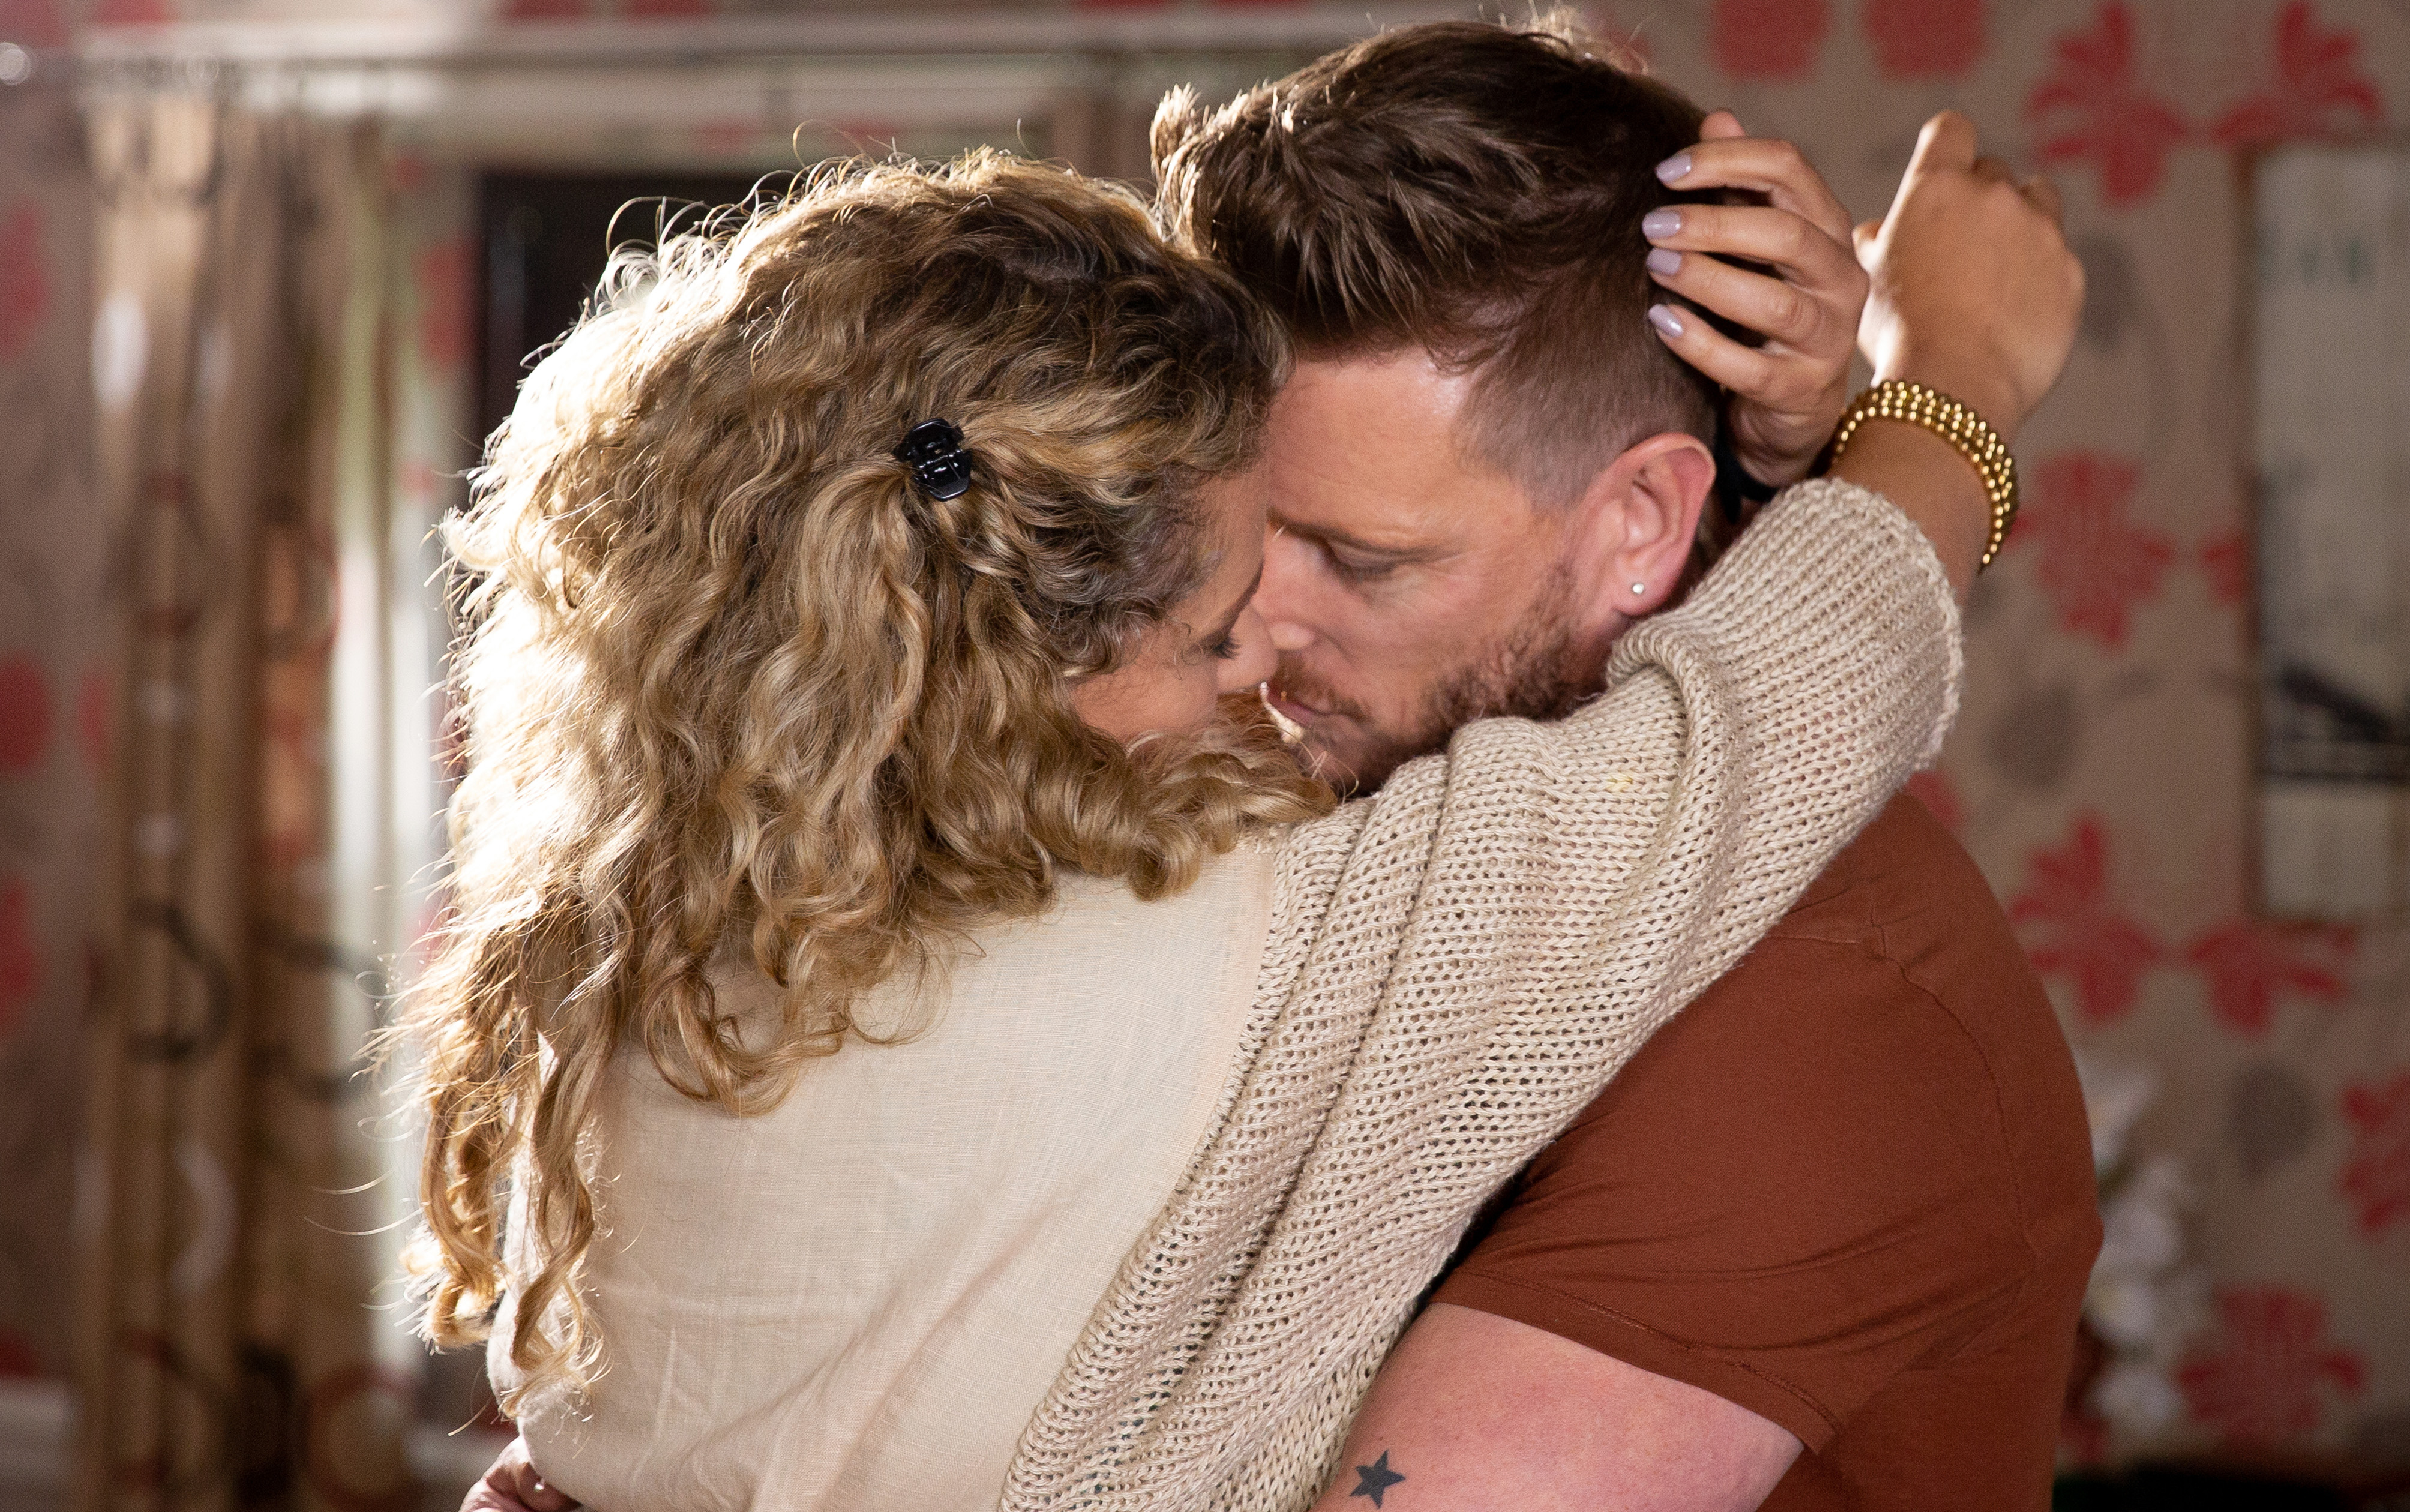 Emmerdale spoilers: David and Maya spend the night together